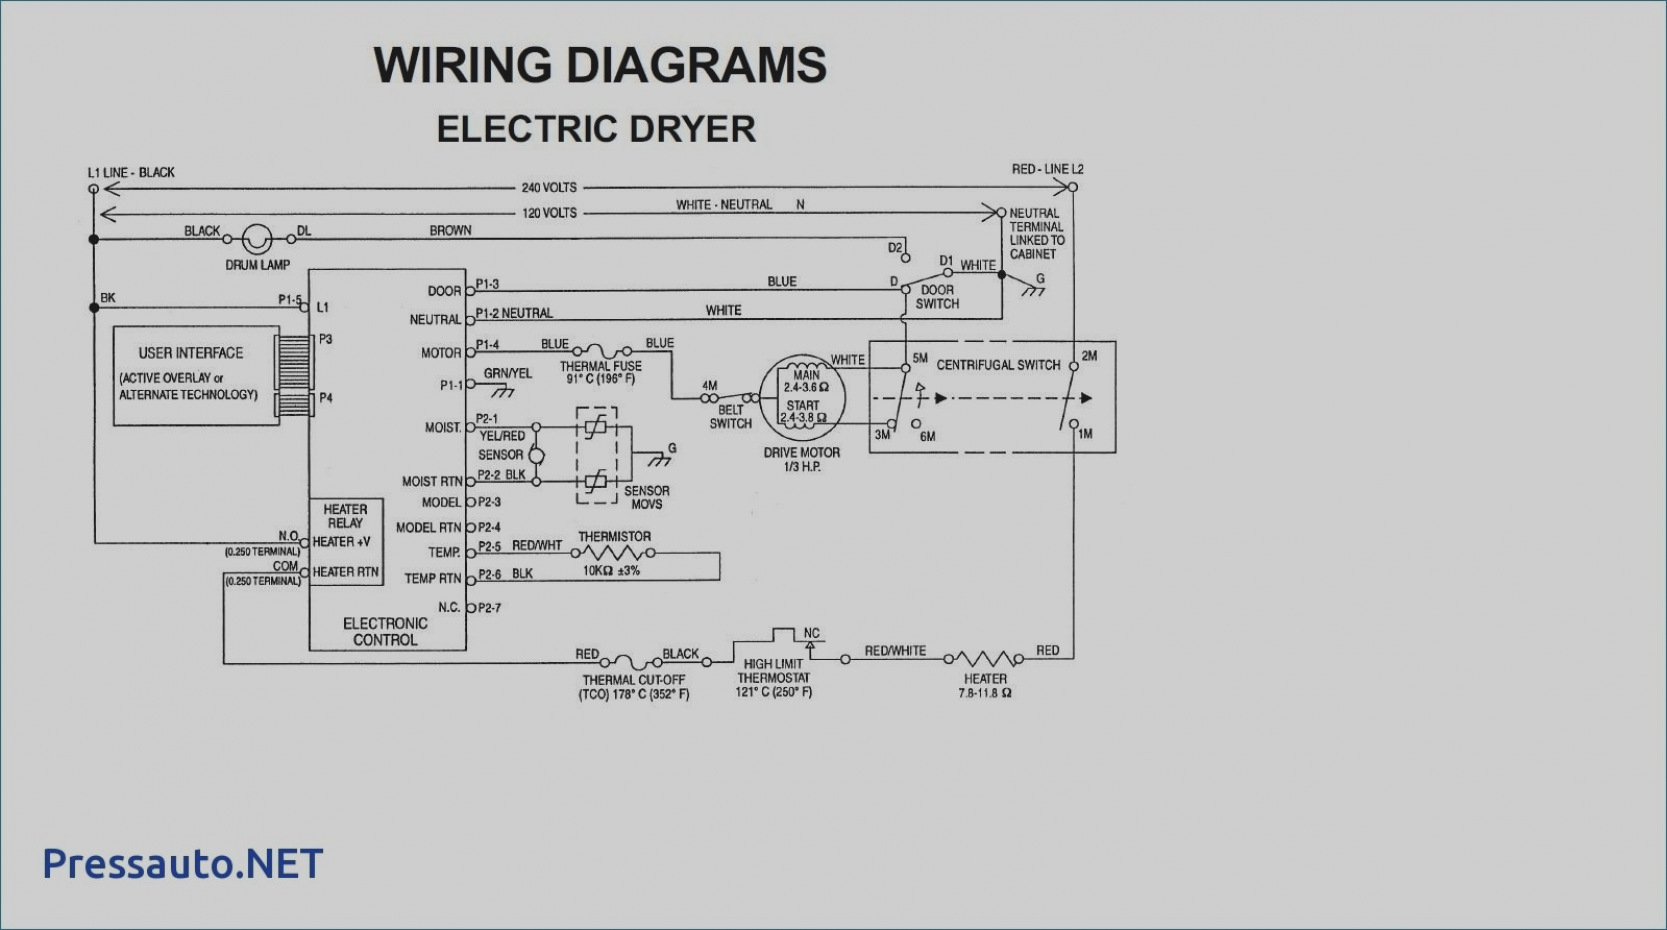 whirlpool electric dryer wiring diagram Collection-whirlpool dryer wiring diagram Download Trend Whirlpool Dryer Wiring Diagram Troubleshoot Image Collections Free For DOWNLOAD Wiring Diagram 17-a